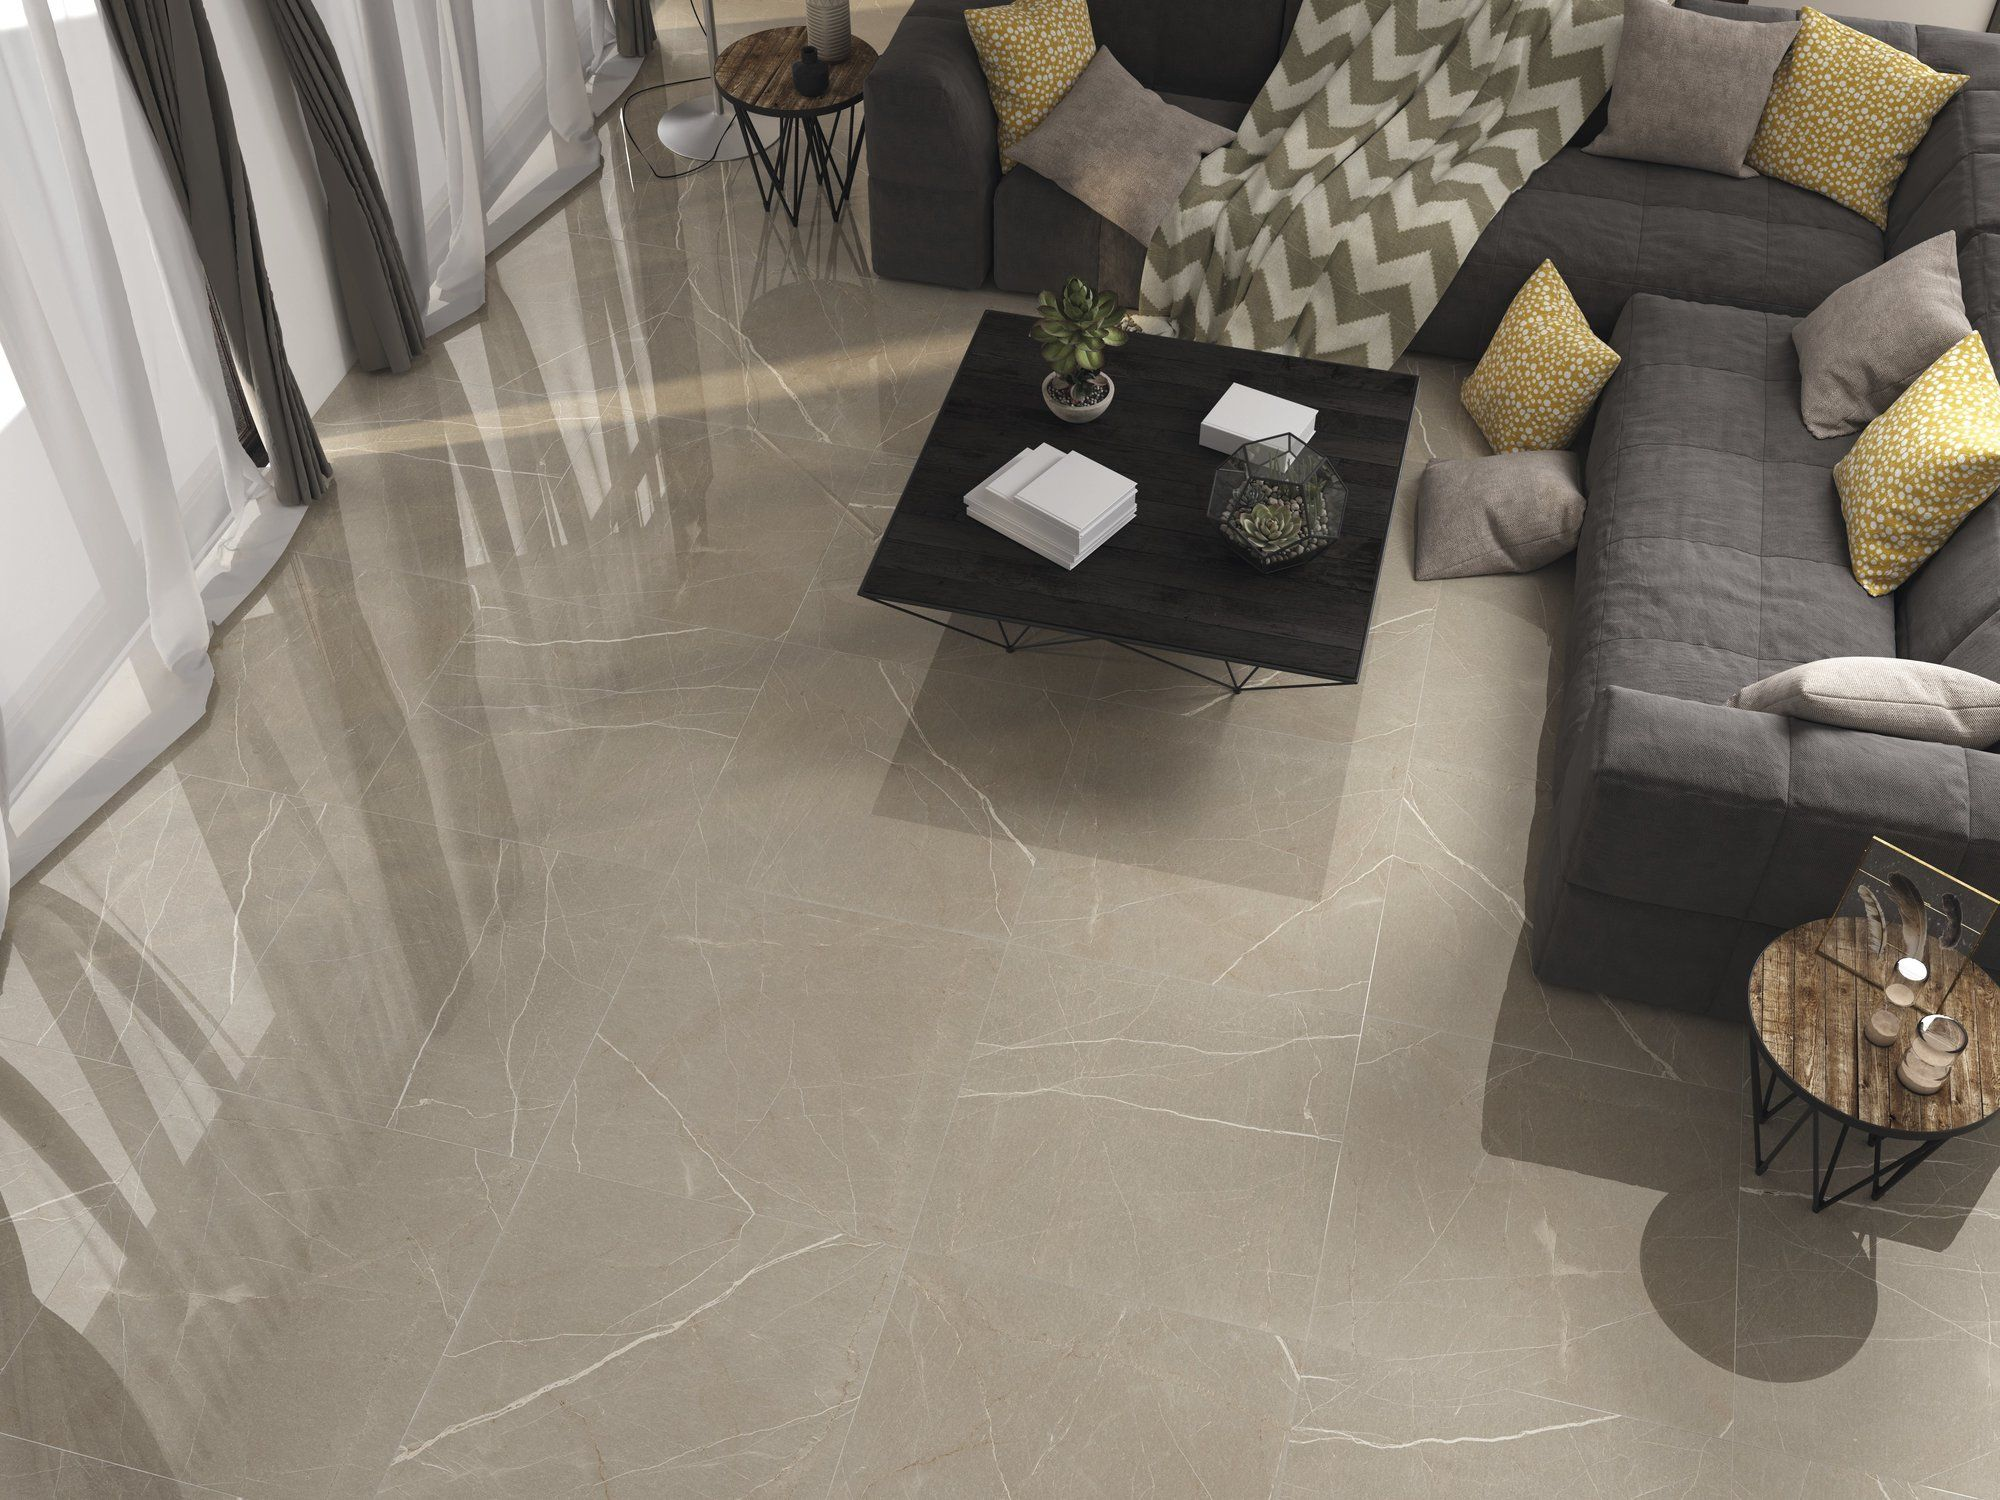 Fastination 75x75cm From Ape Gives The Elegance And Timelessness Of Marble In The Hues Of Cool Neutral Color Living Room Tiles Loft Living Living Room Flooring